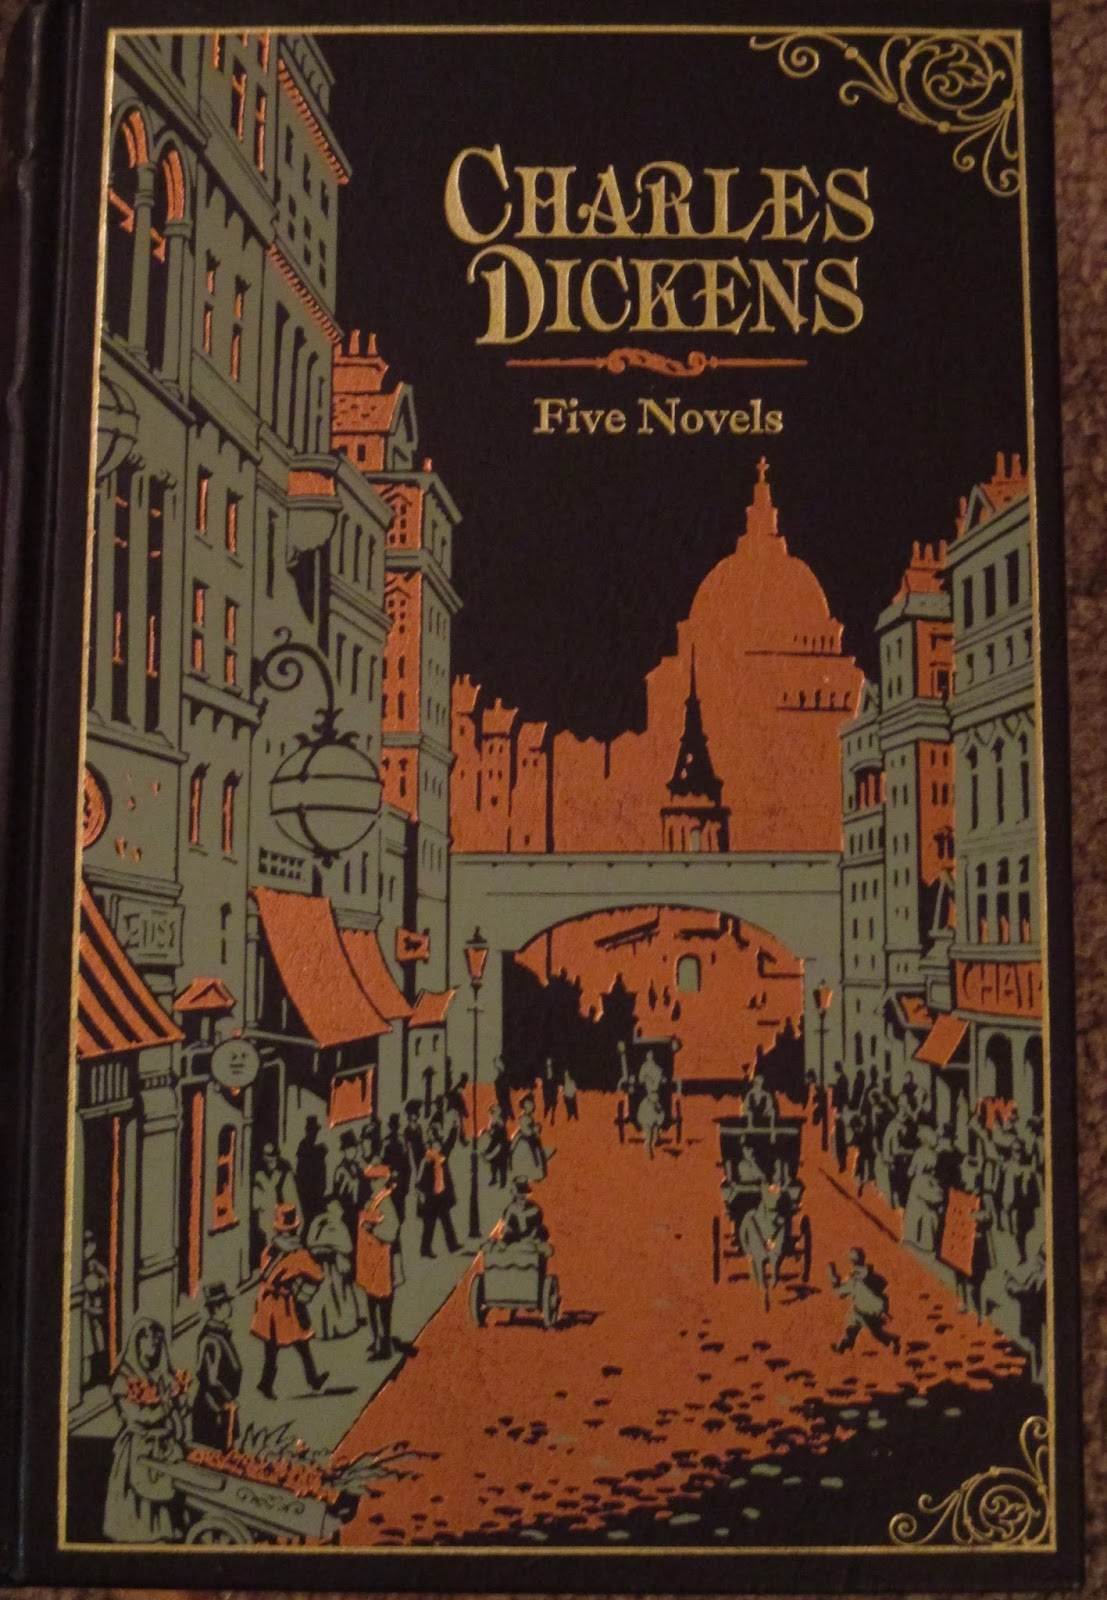 an analysis of david copperfield and oliver twist two novels by charles dickens Works of charles dickens: oliver twist, great expectations, david copperfield, tale of two cities.